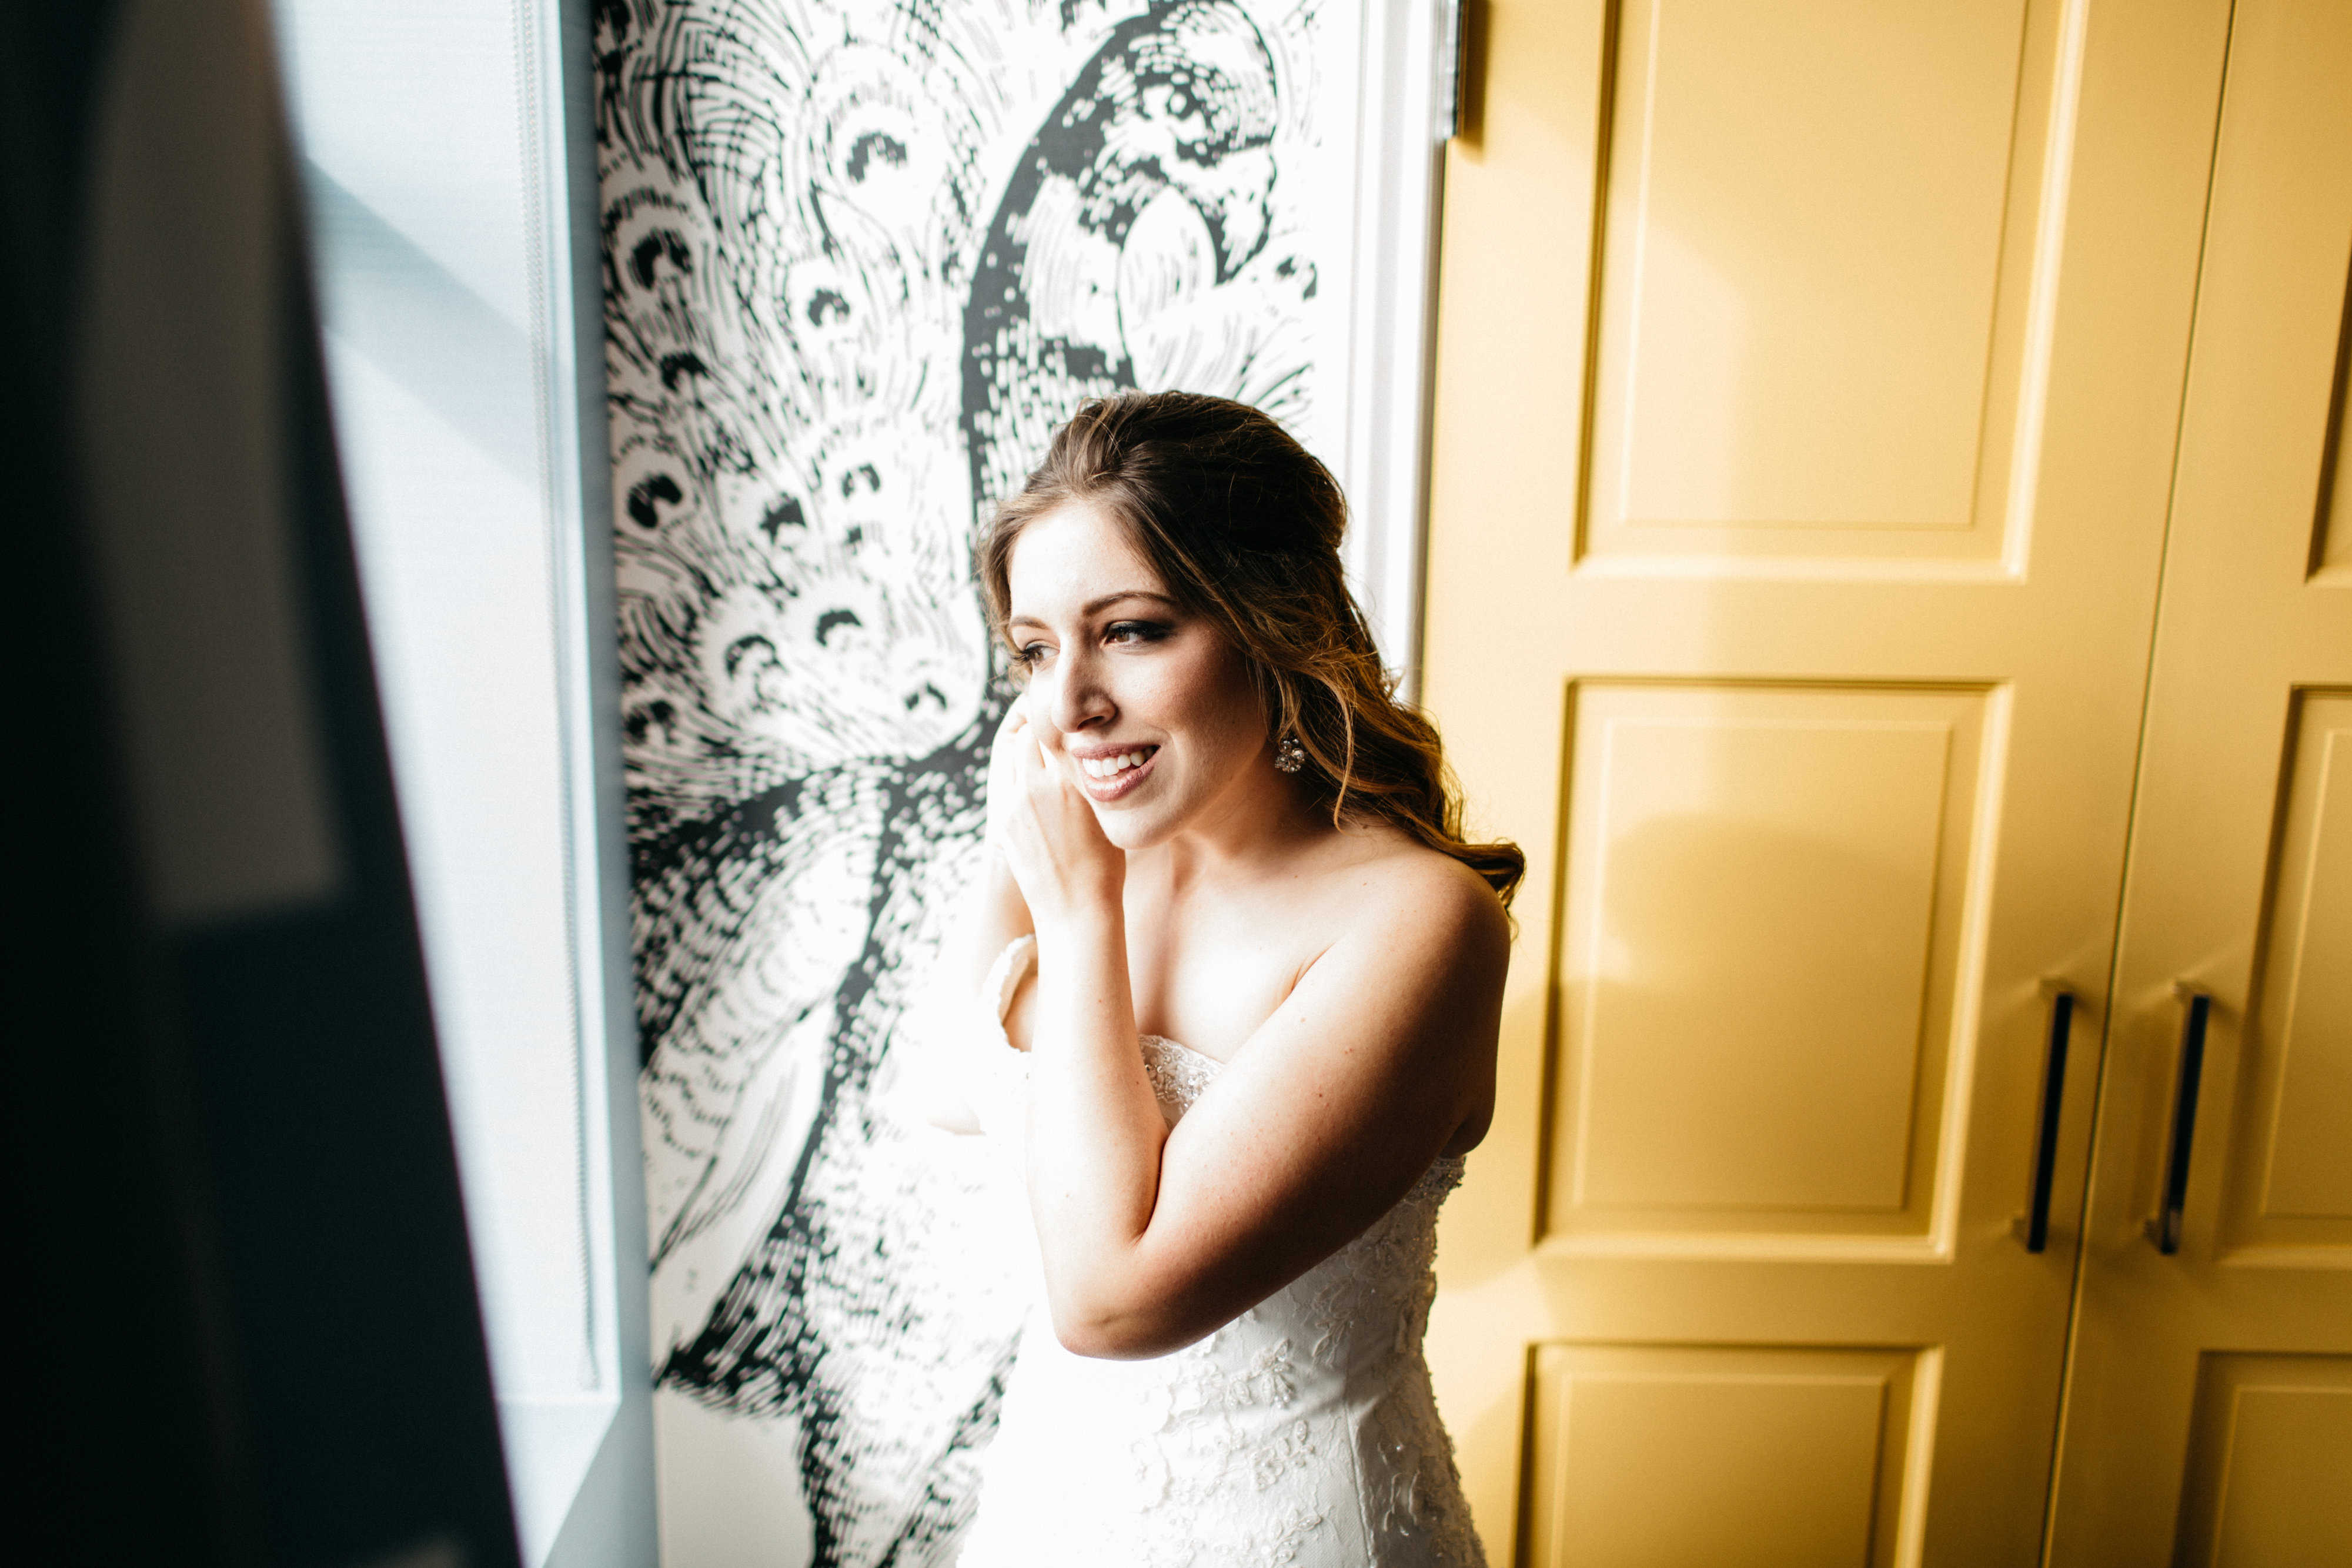 Samantha Giusti  poses by a window on her wedding day.